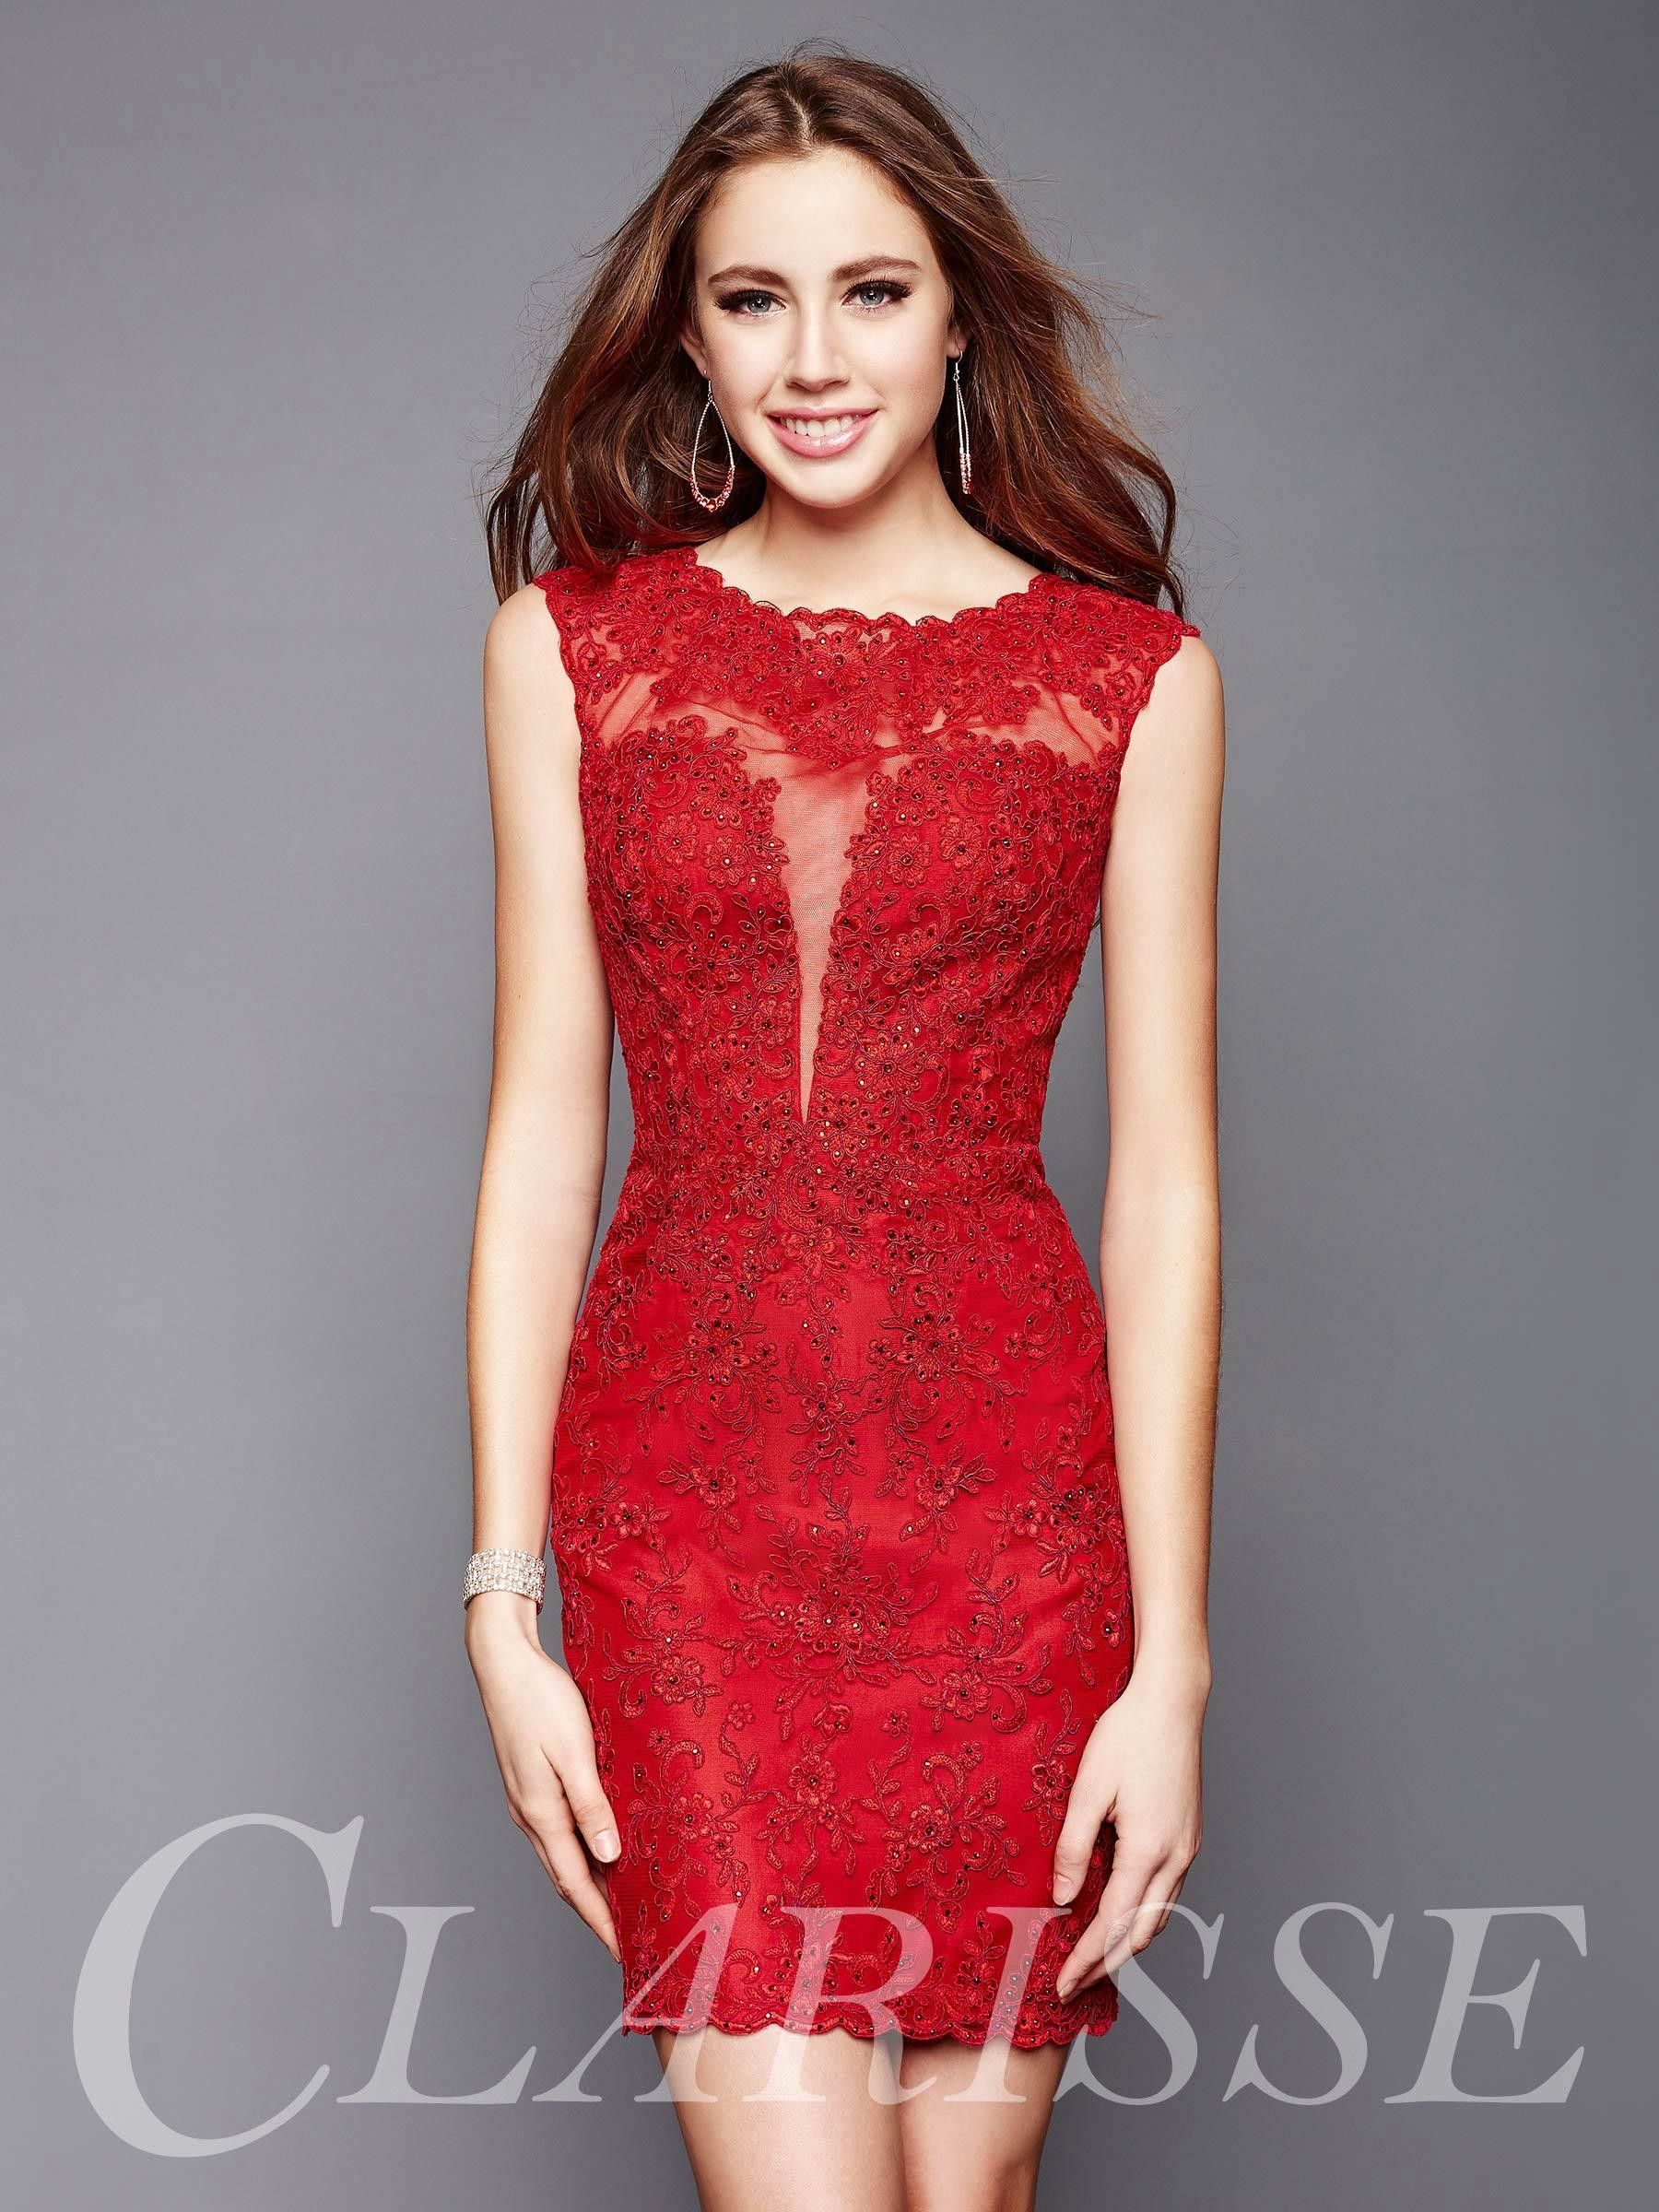 Romantic and ravishing this daring cocktail dress rental is a